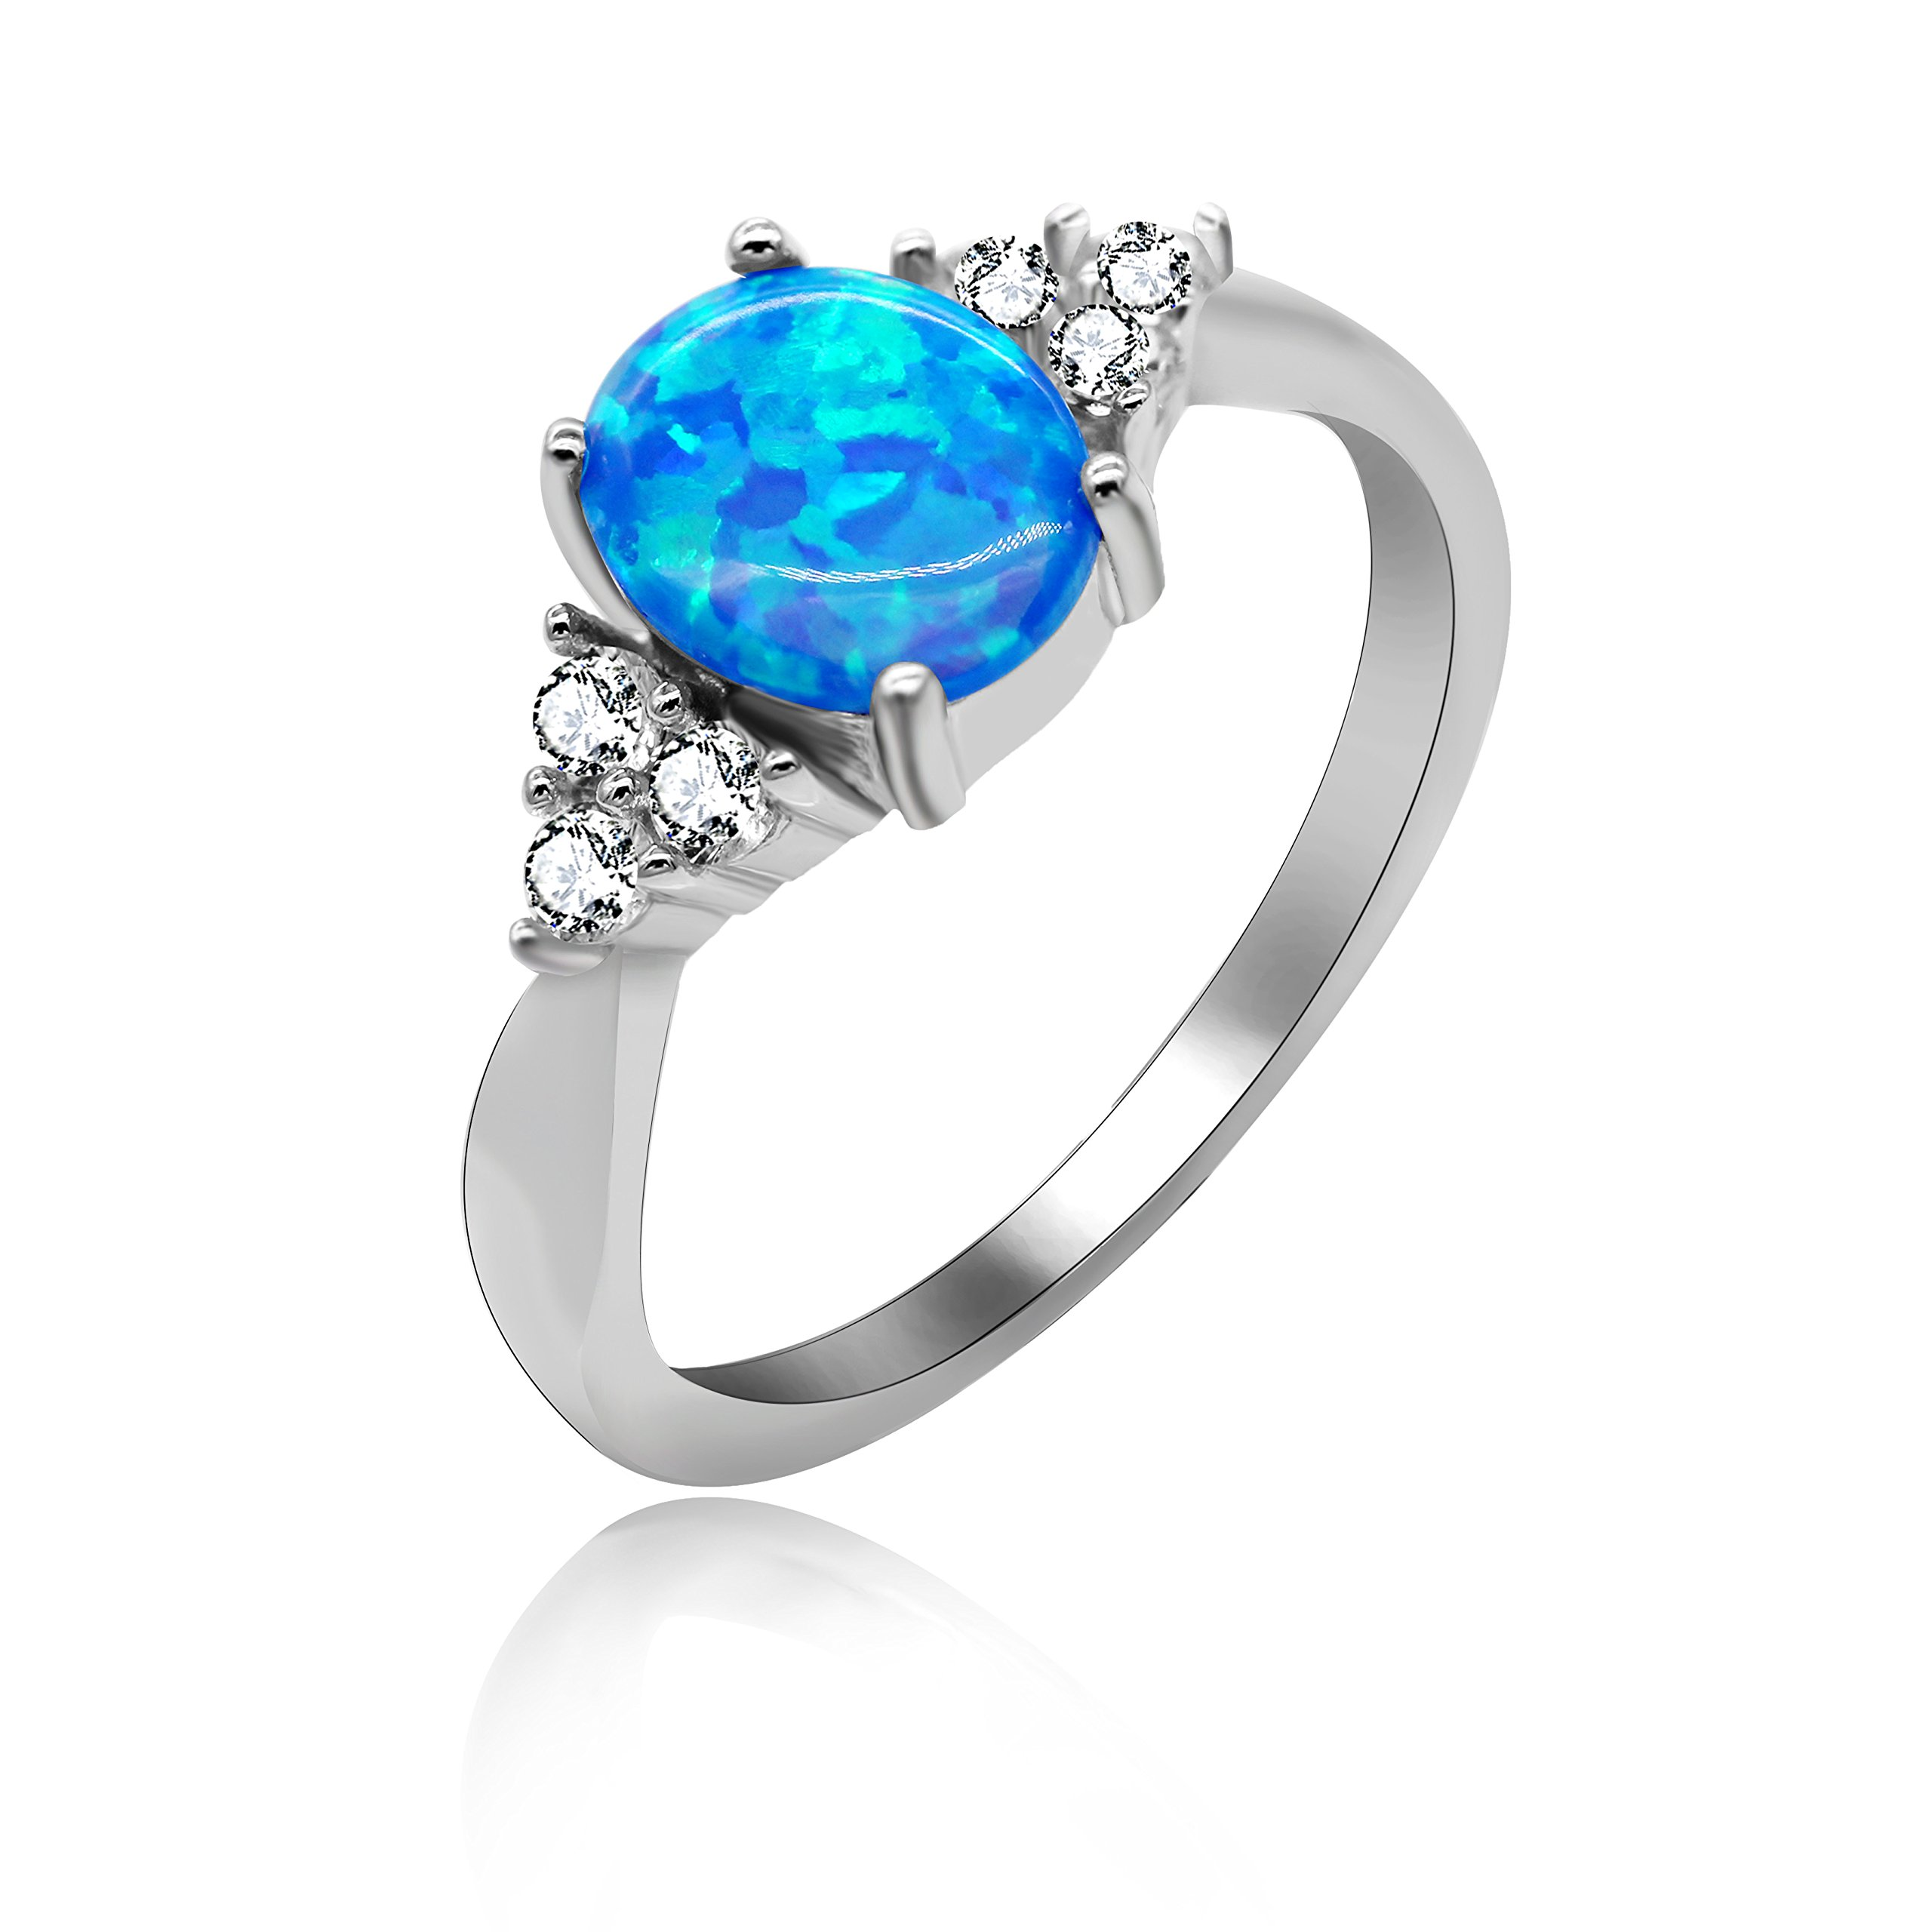 Uloveido 2.96g 925 Sterling Silver Birth-Stone Ring Oval Cut Created Blue Fire Opal with Round Clear CZ Luxury Wedding Engagement Jewelry for Women Size 8 JZ125